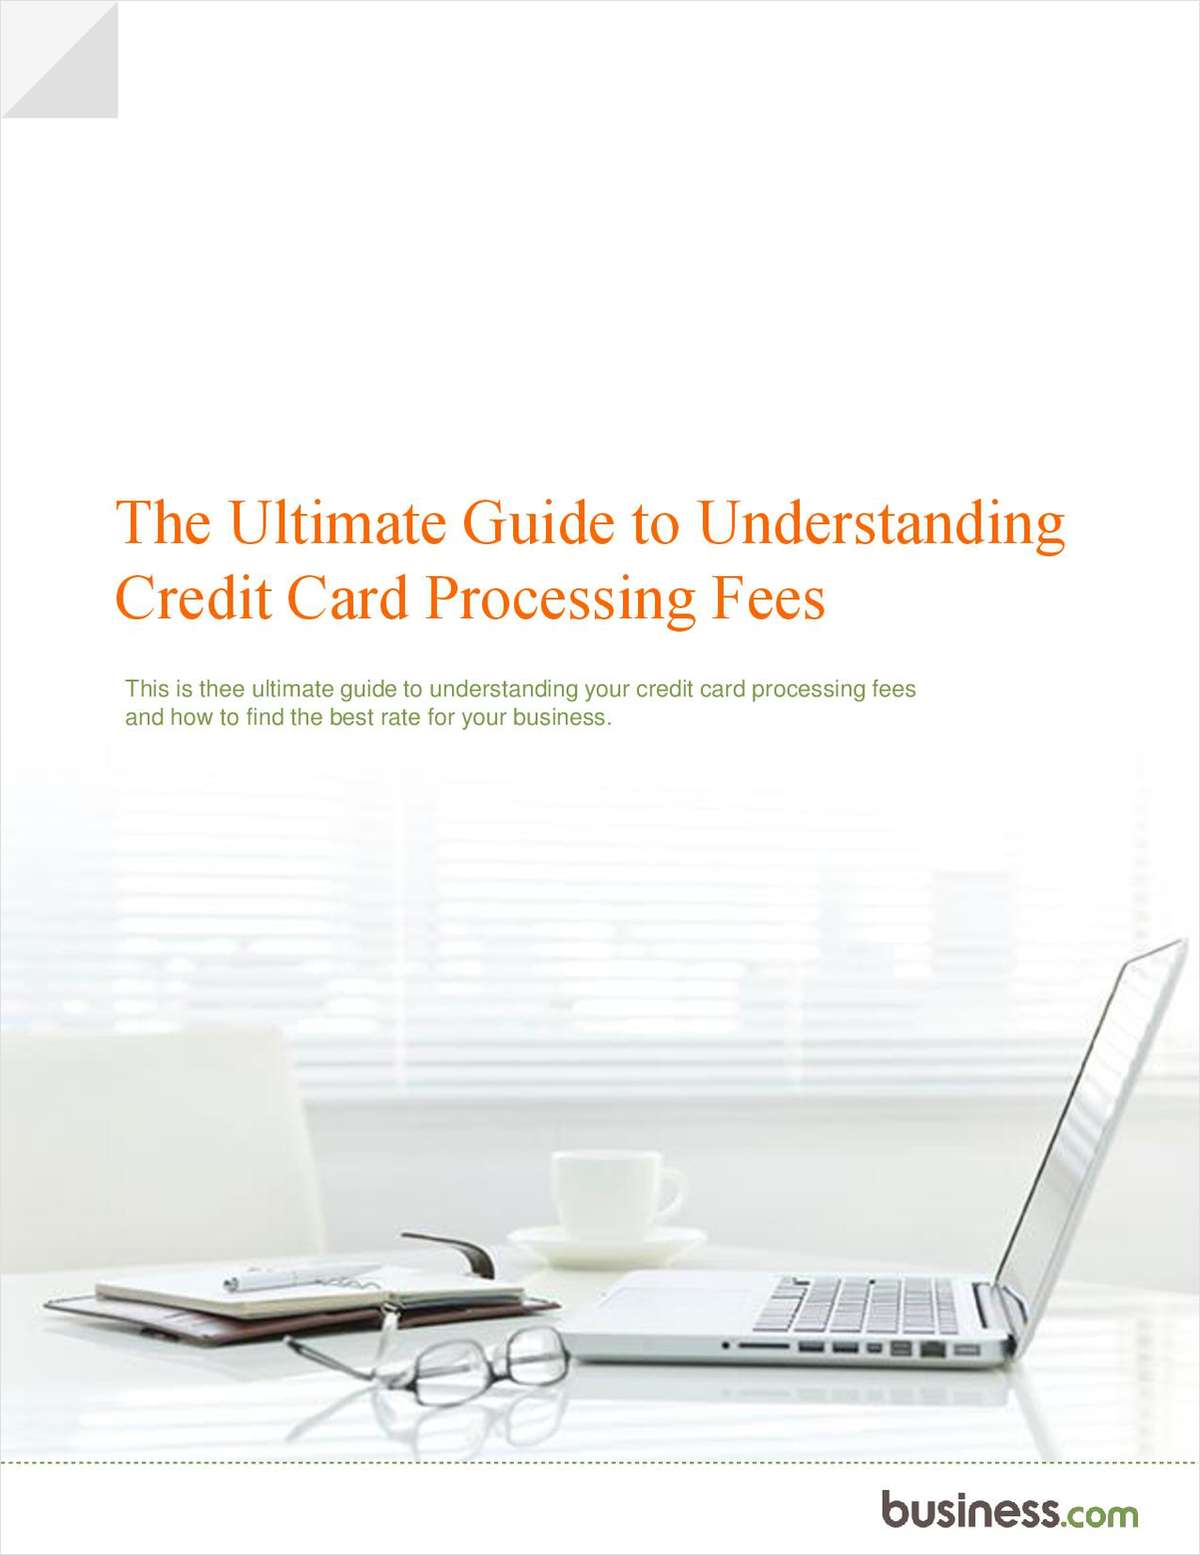 A Merchant's Ultimate Guide to Understanding Credit Card Processing Fees